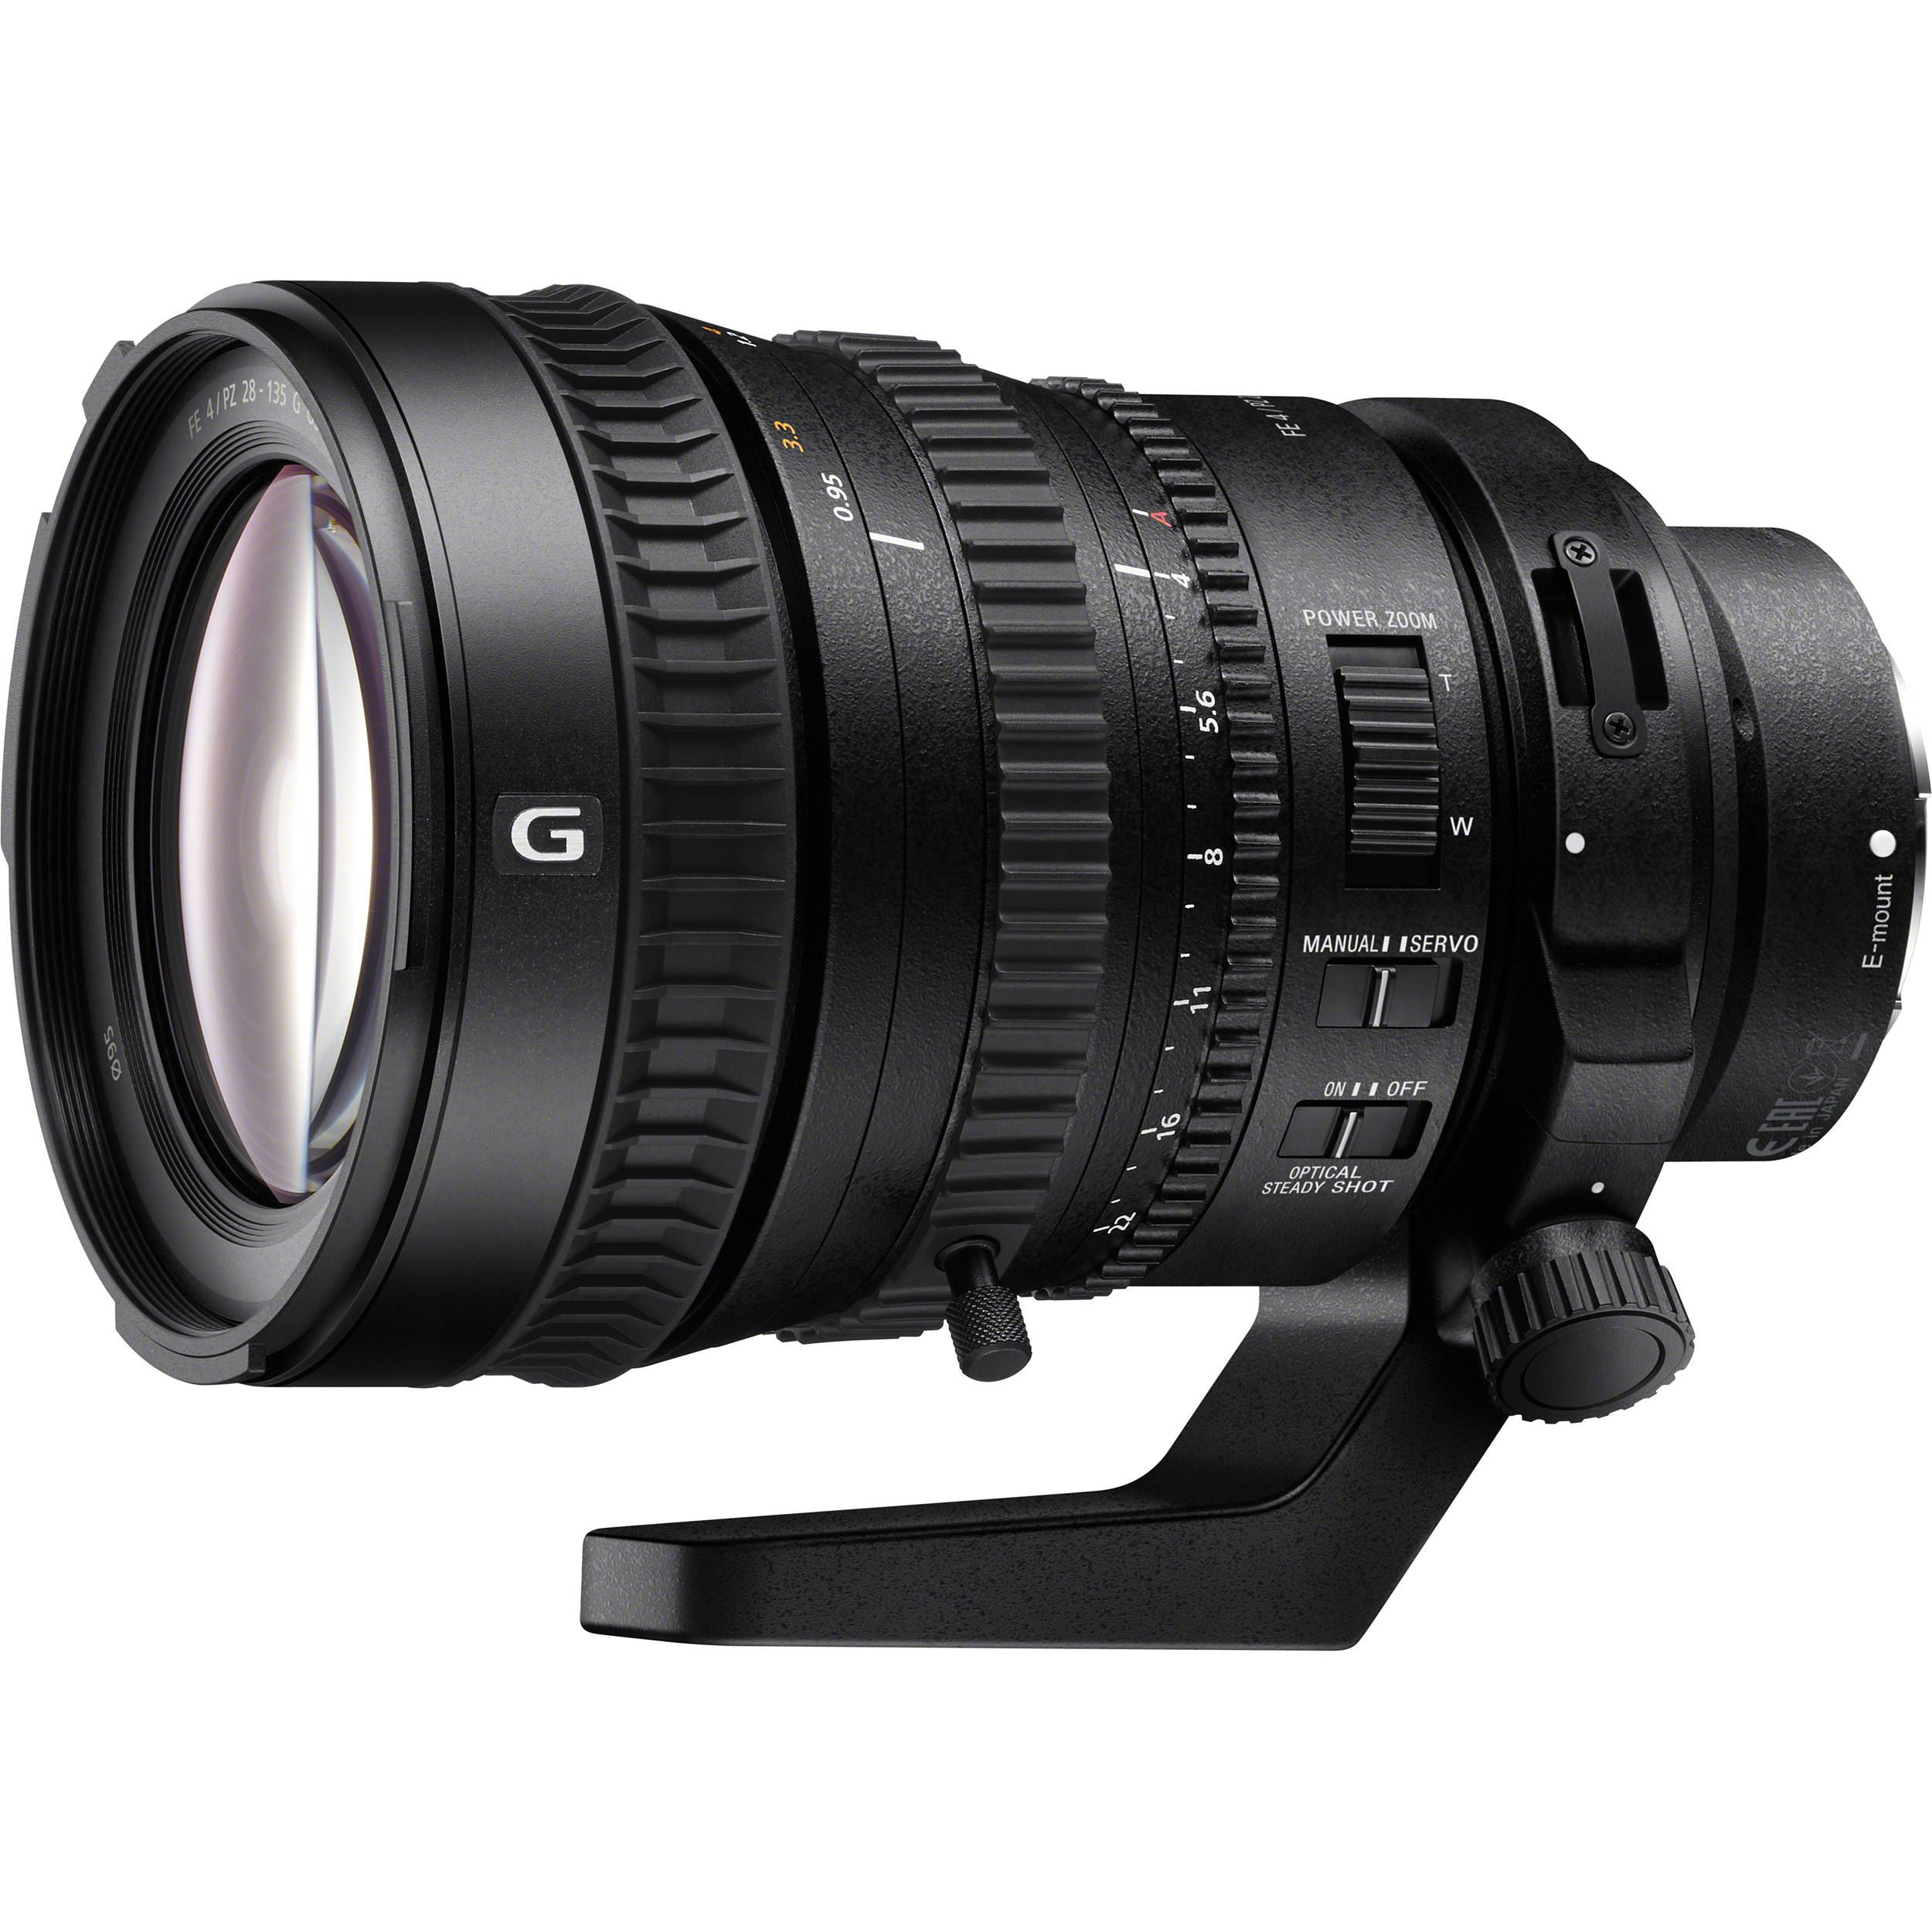 Sony FE PZ 28-135mm F4 G OSS - SELP28135G.SYX